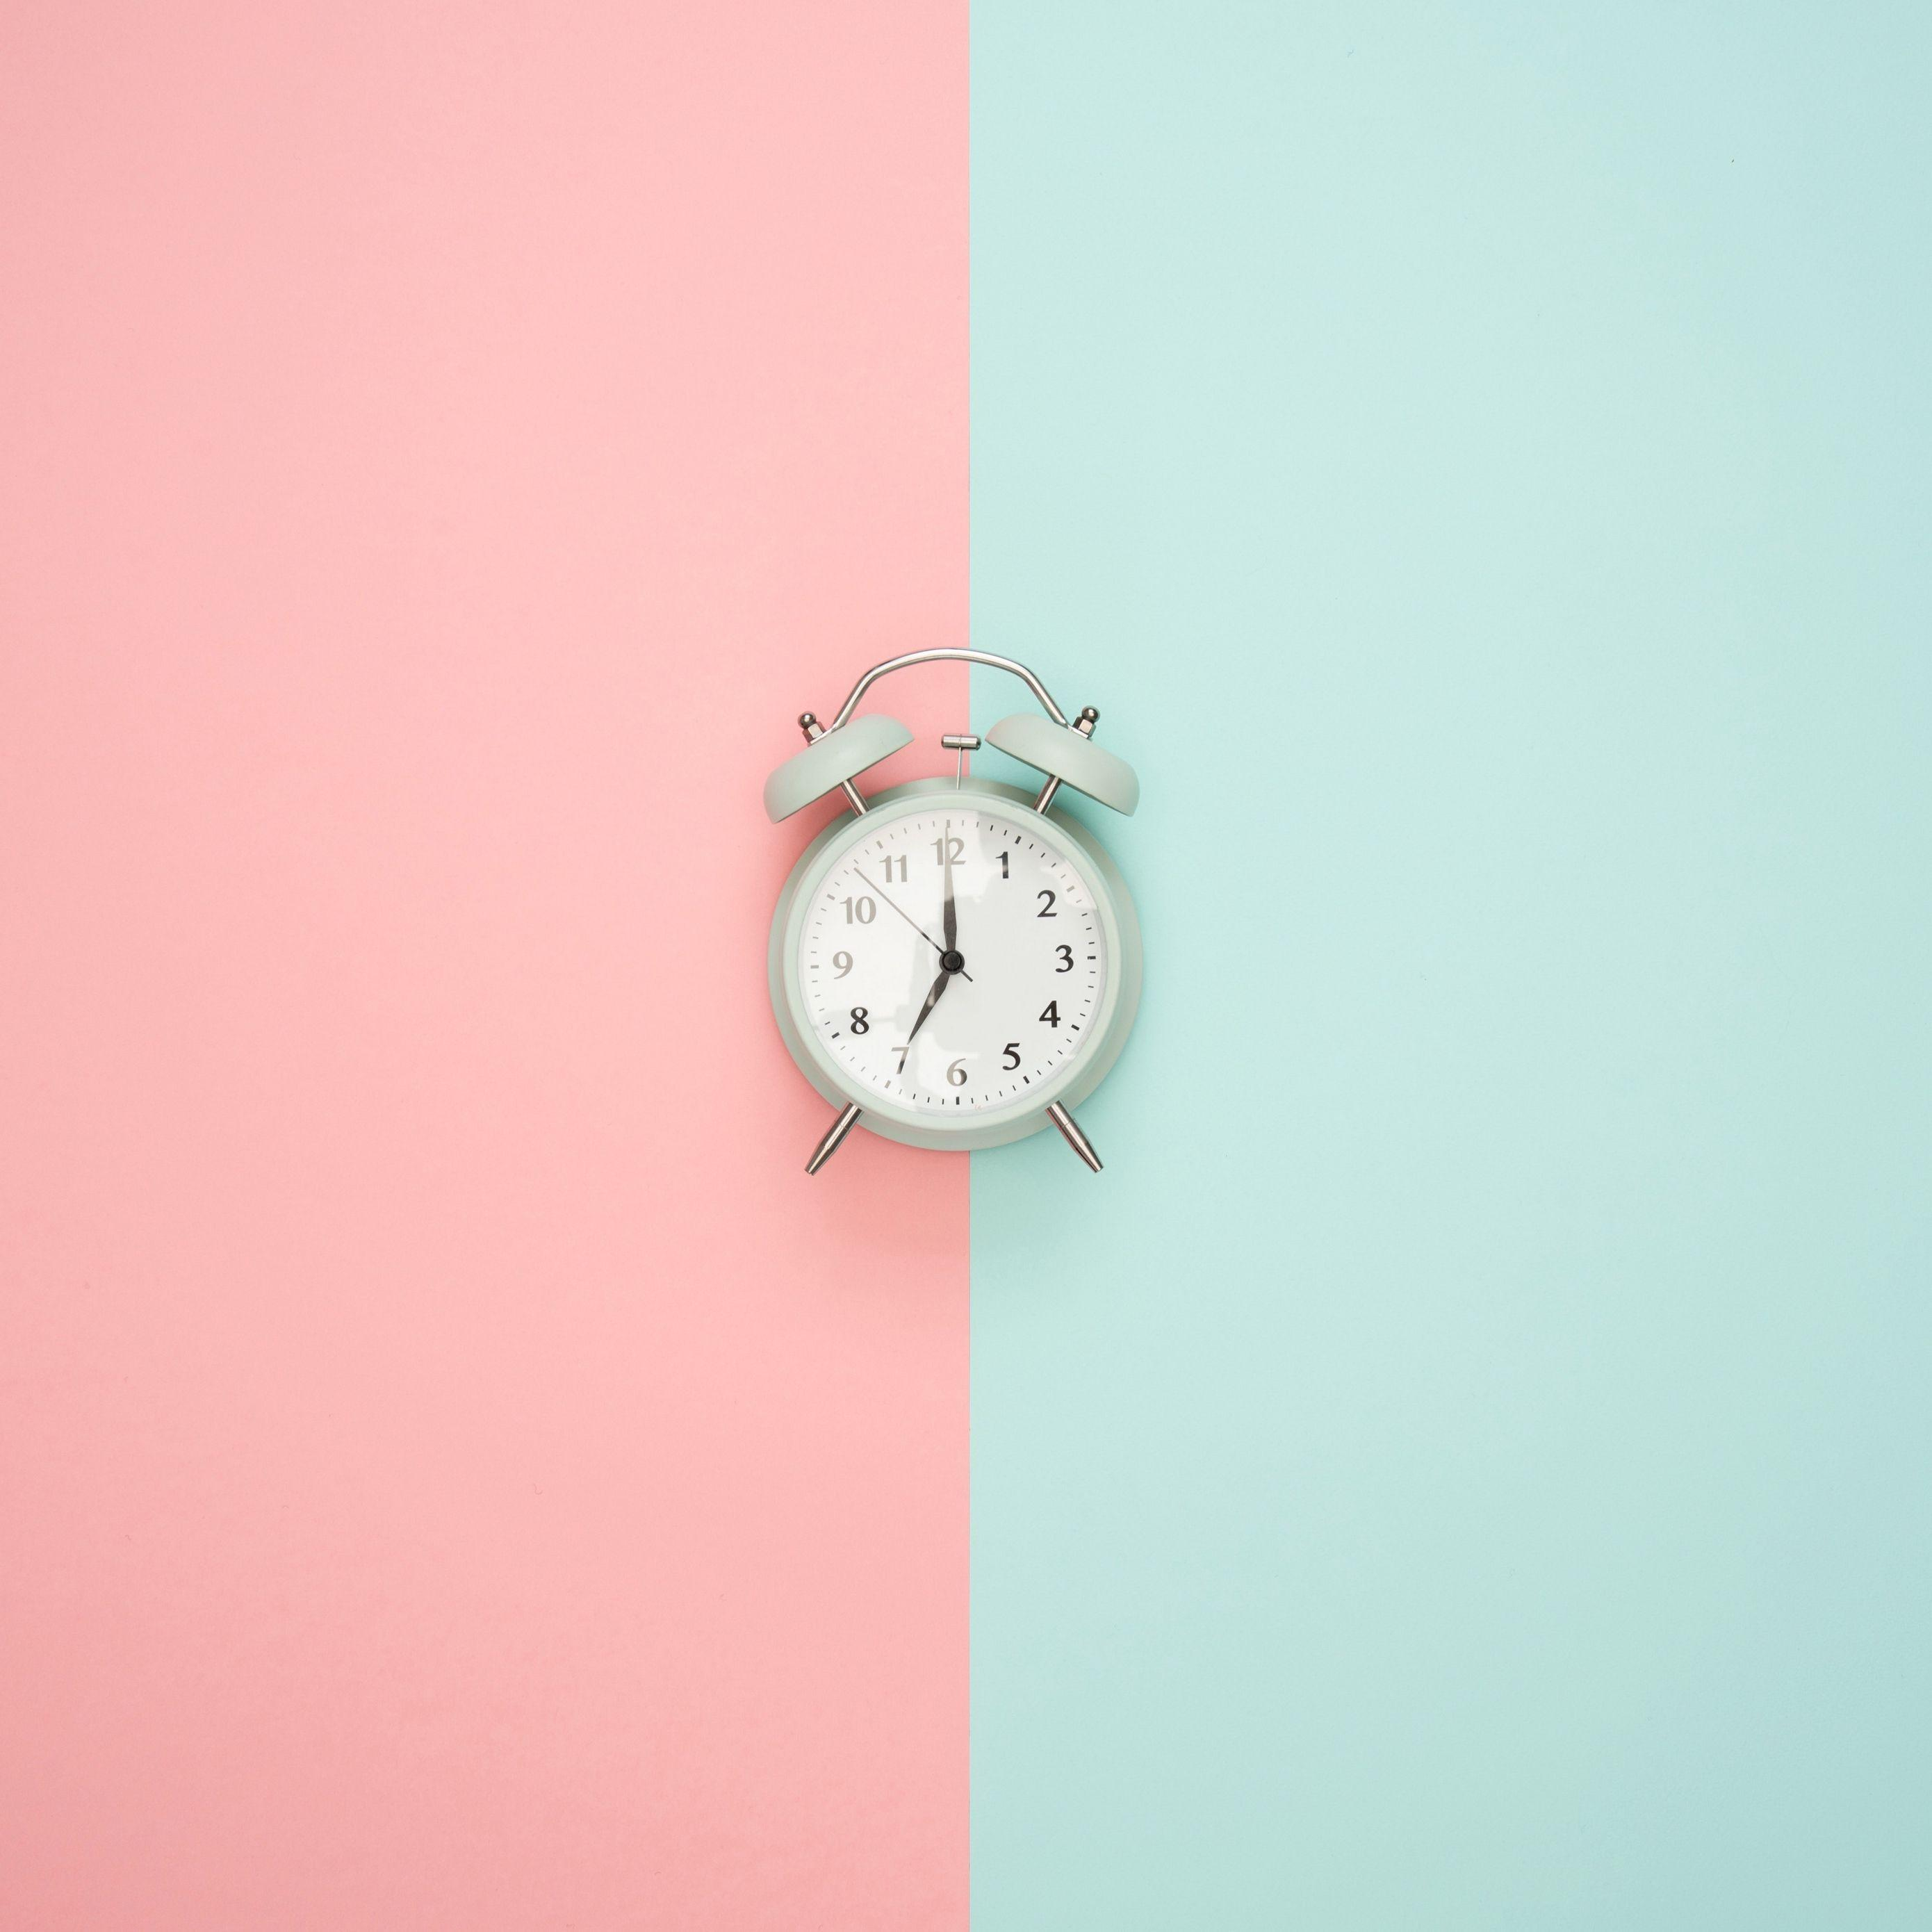 Download wallpapers 2780x2780 alarm clock, minimalism, pink, pastel